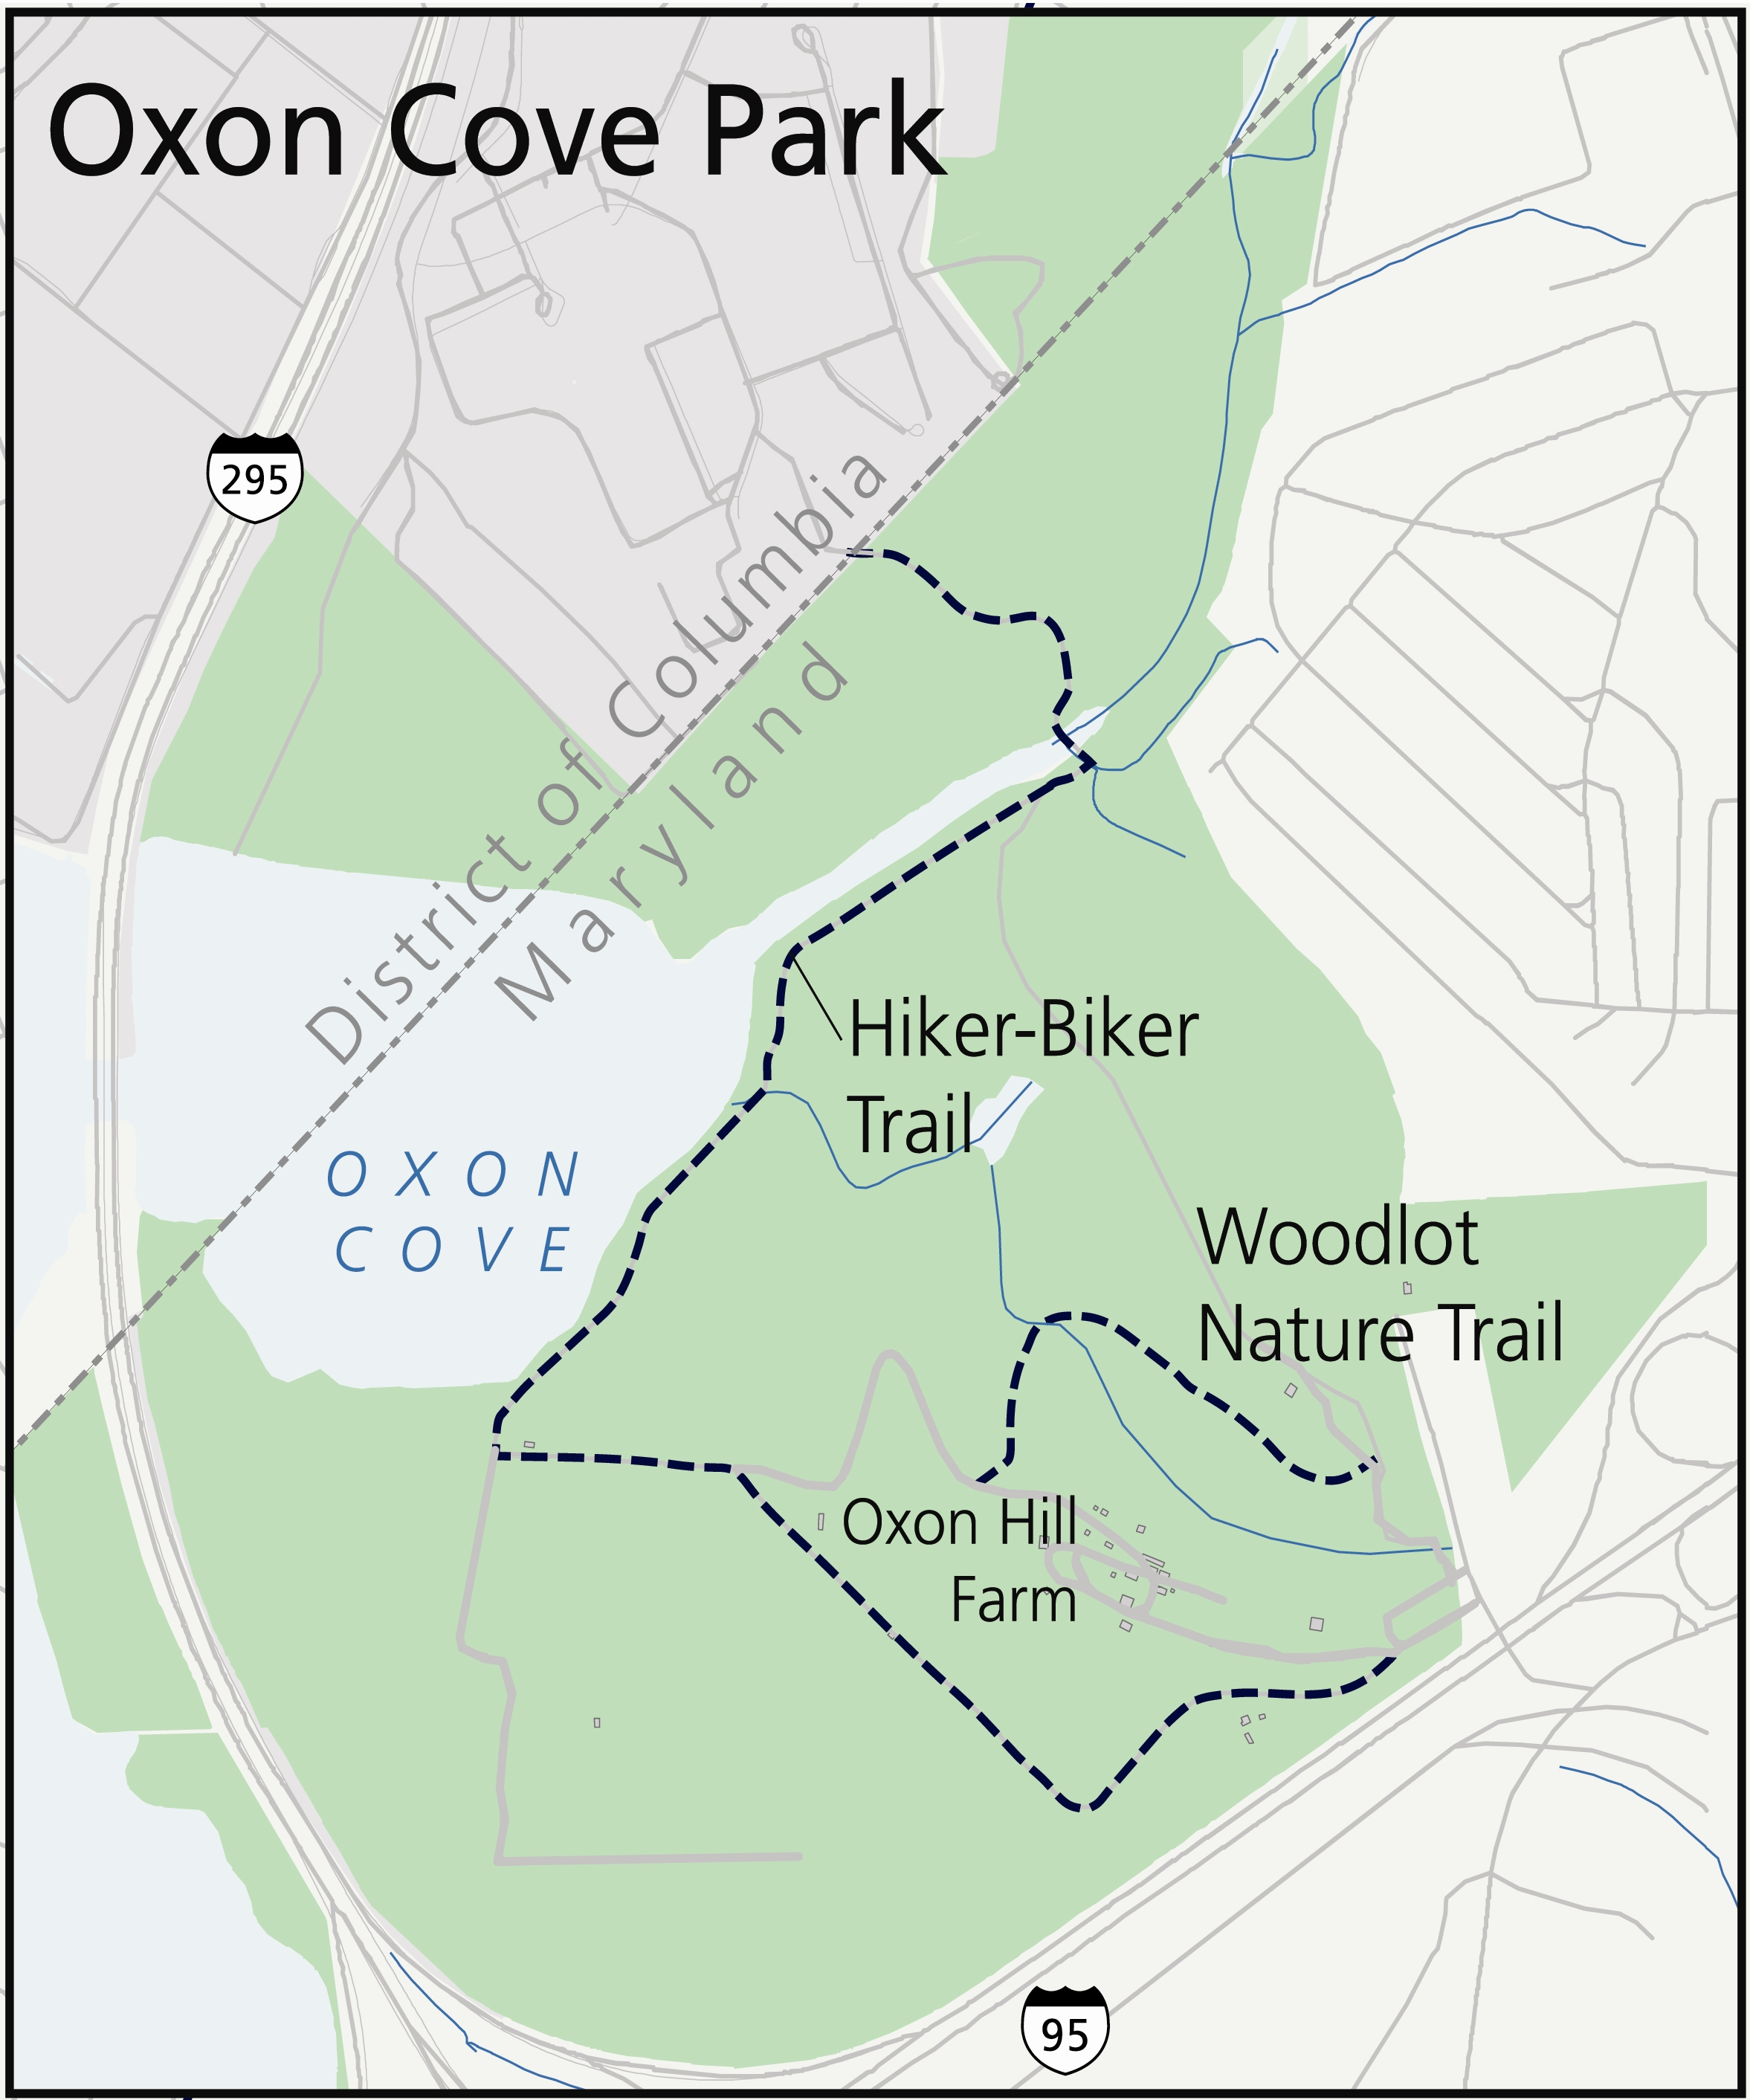 oxon hill maryland map Things To Do Oxon Cove Park Oxon Hill Farm U S National Park oxon hill maryland map